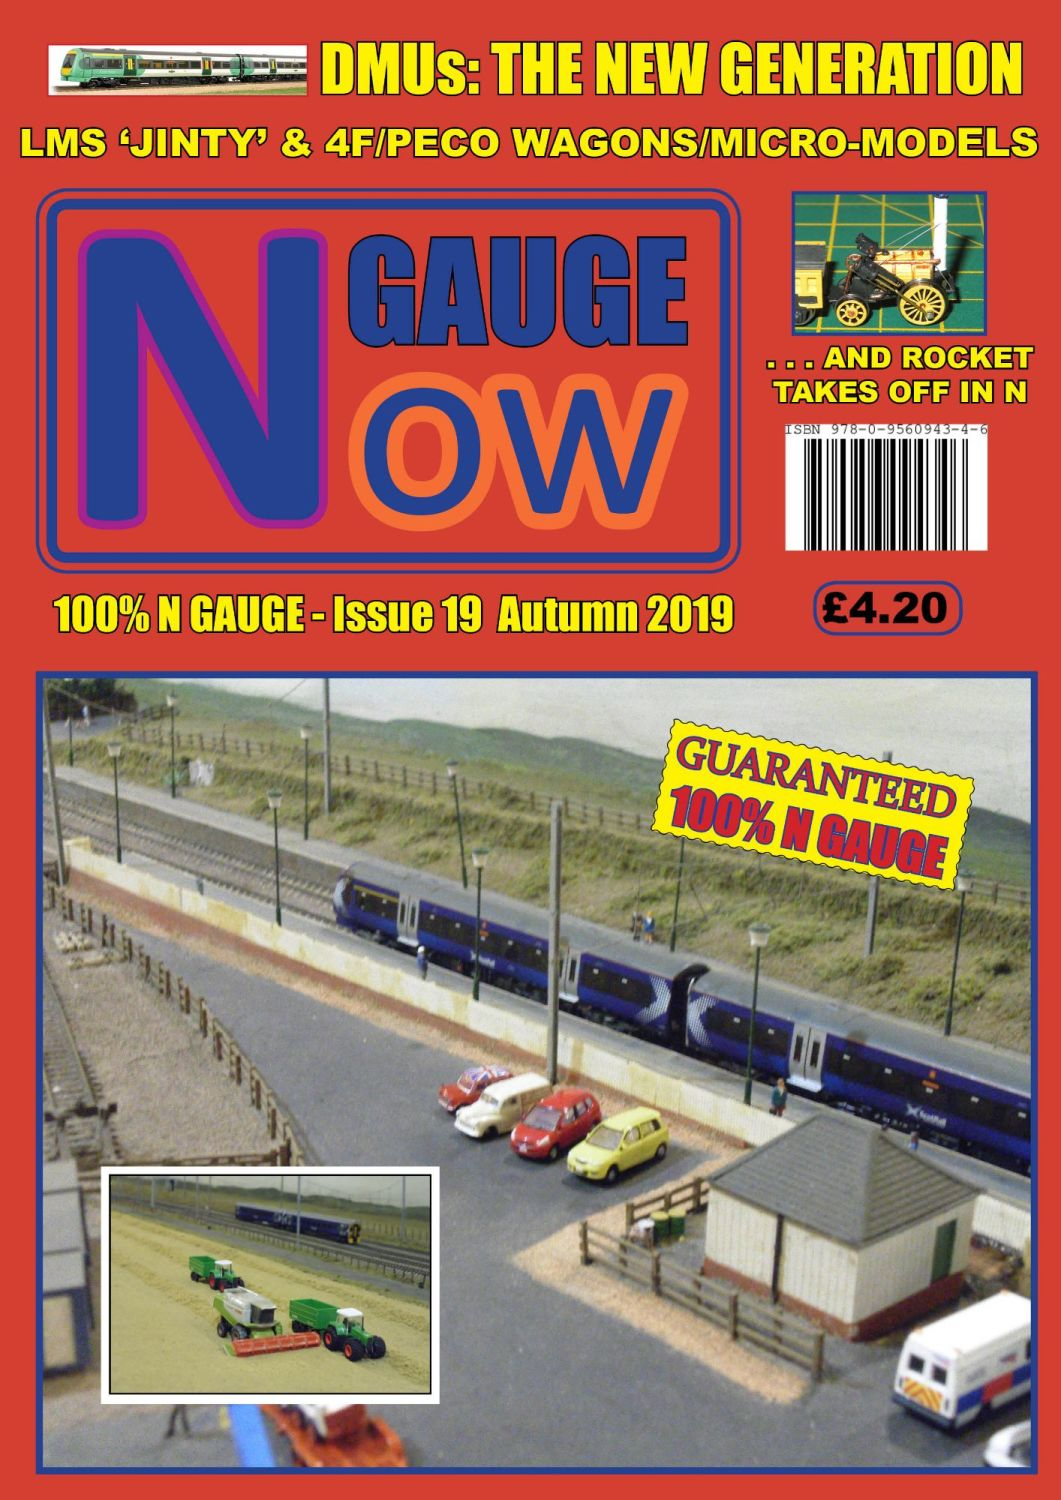 N GAUGE NOW - Issue 19 (Autumn 2019)